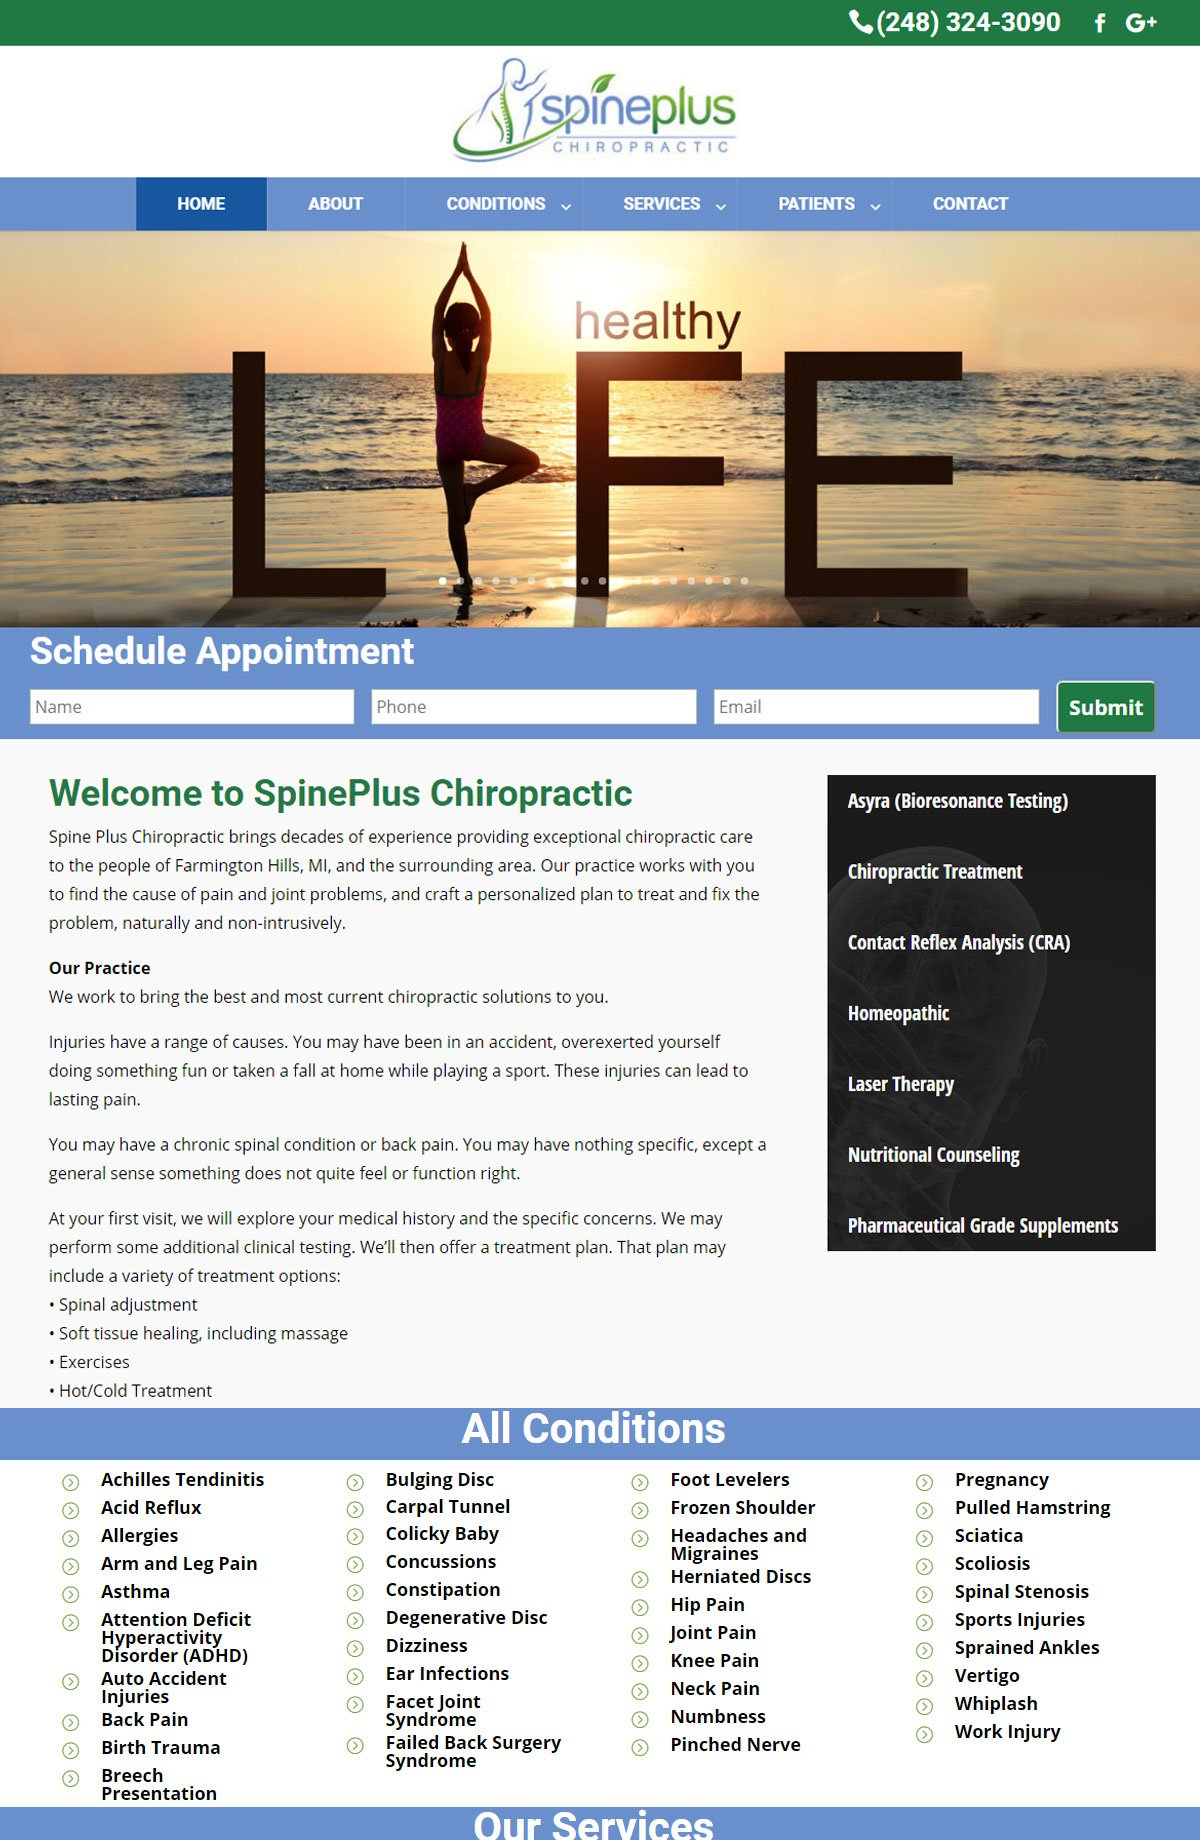 Spineplus Chiropractic